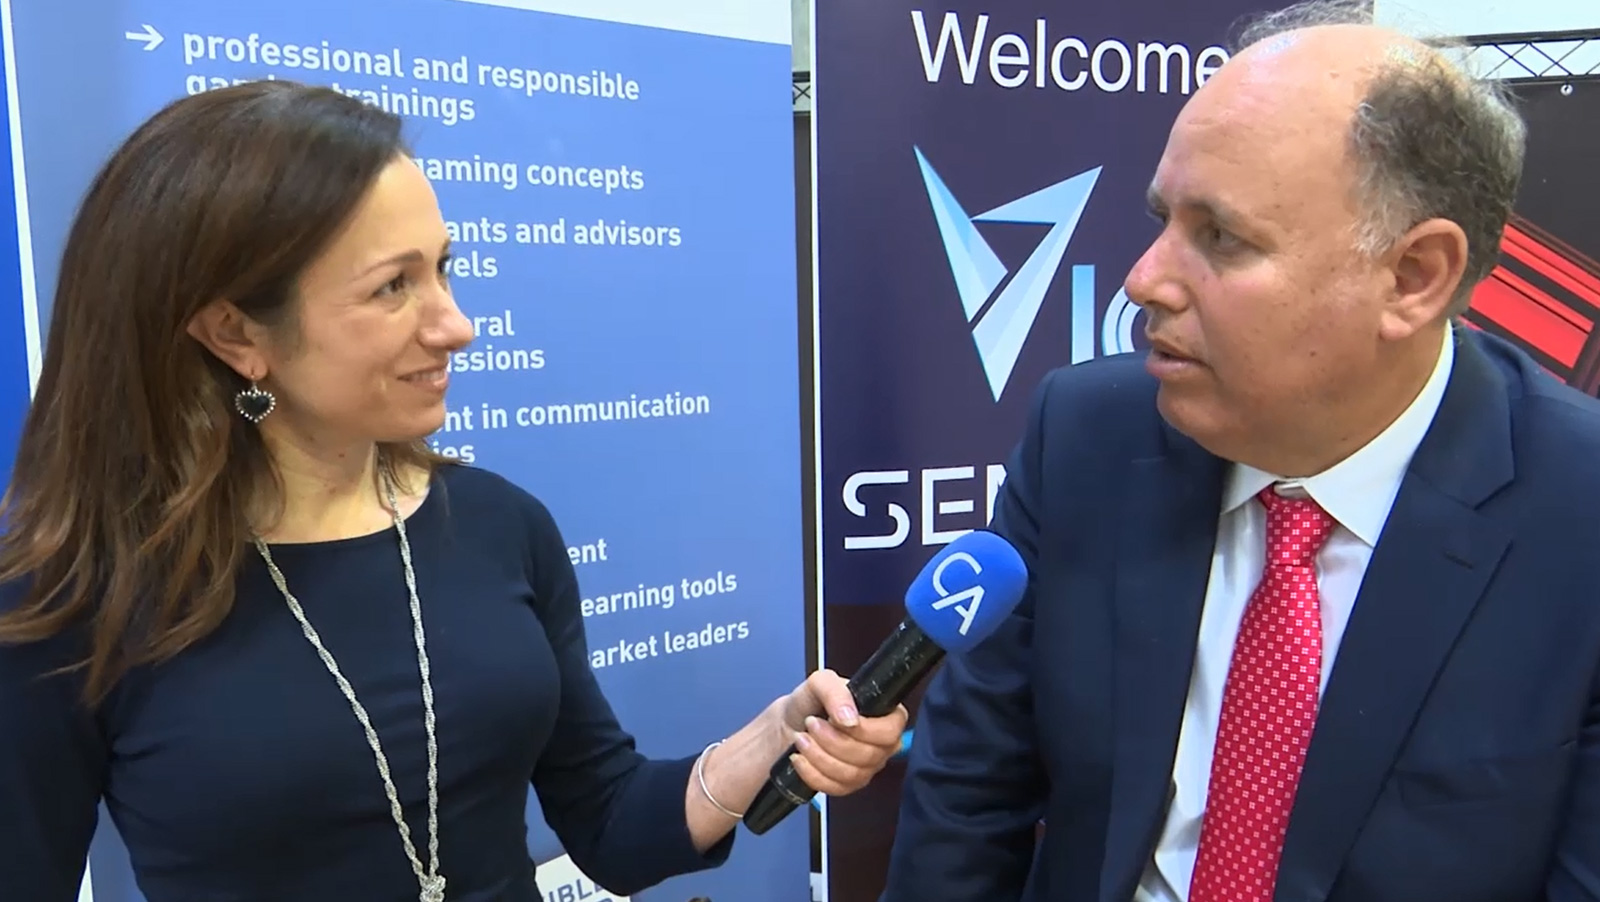 Yoav Dotan sees more room for growth in emerging markets